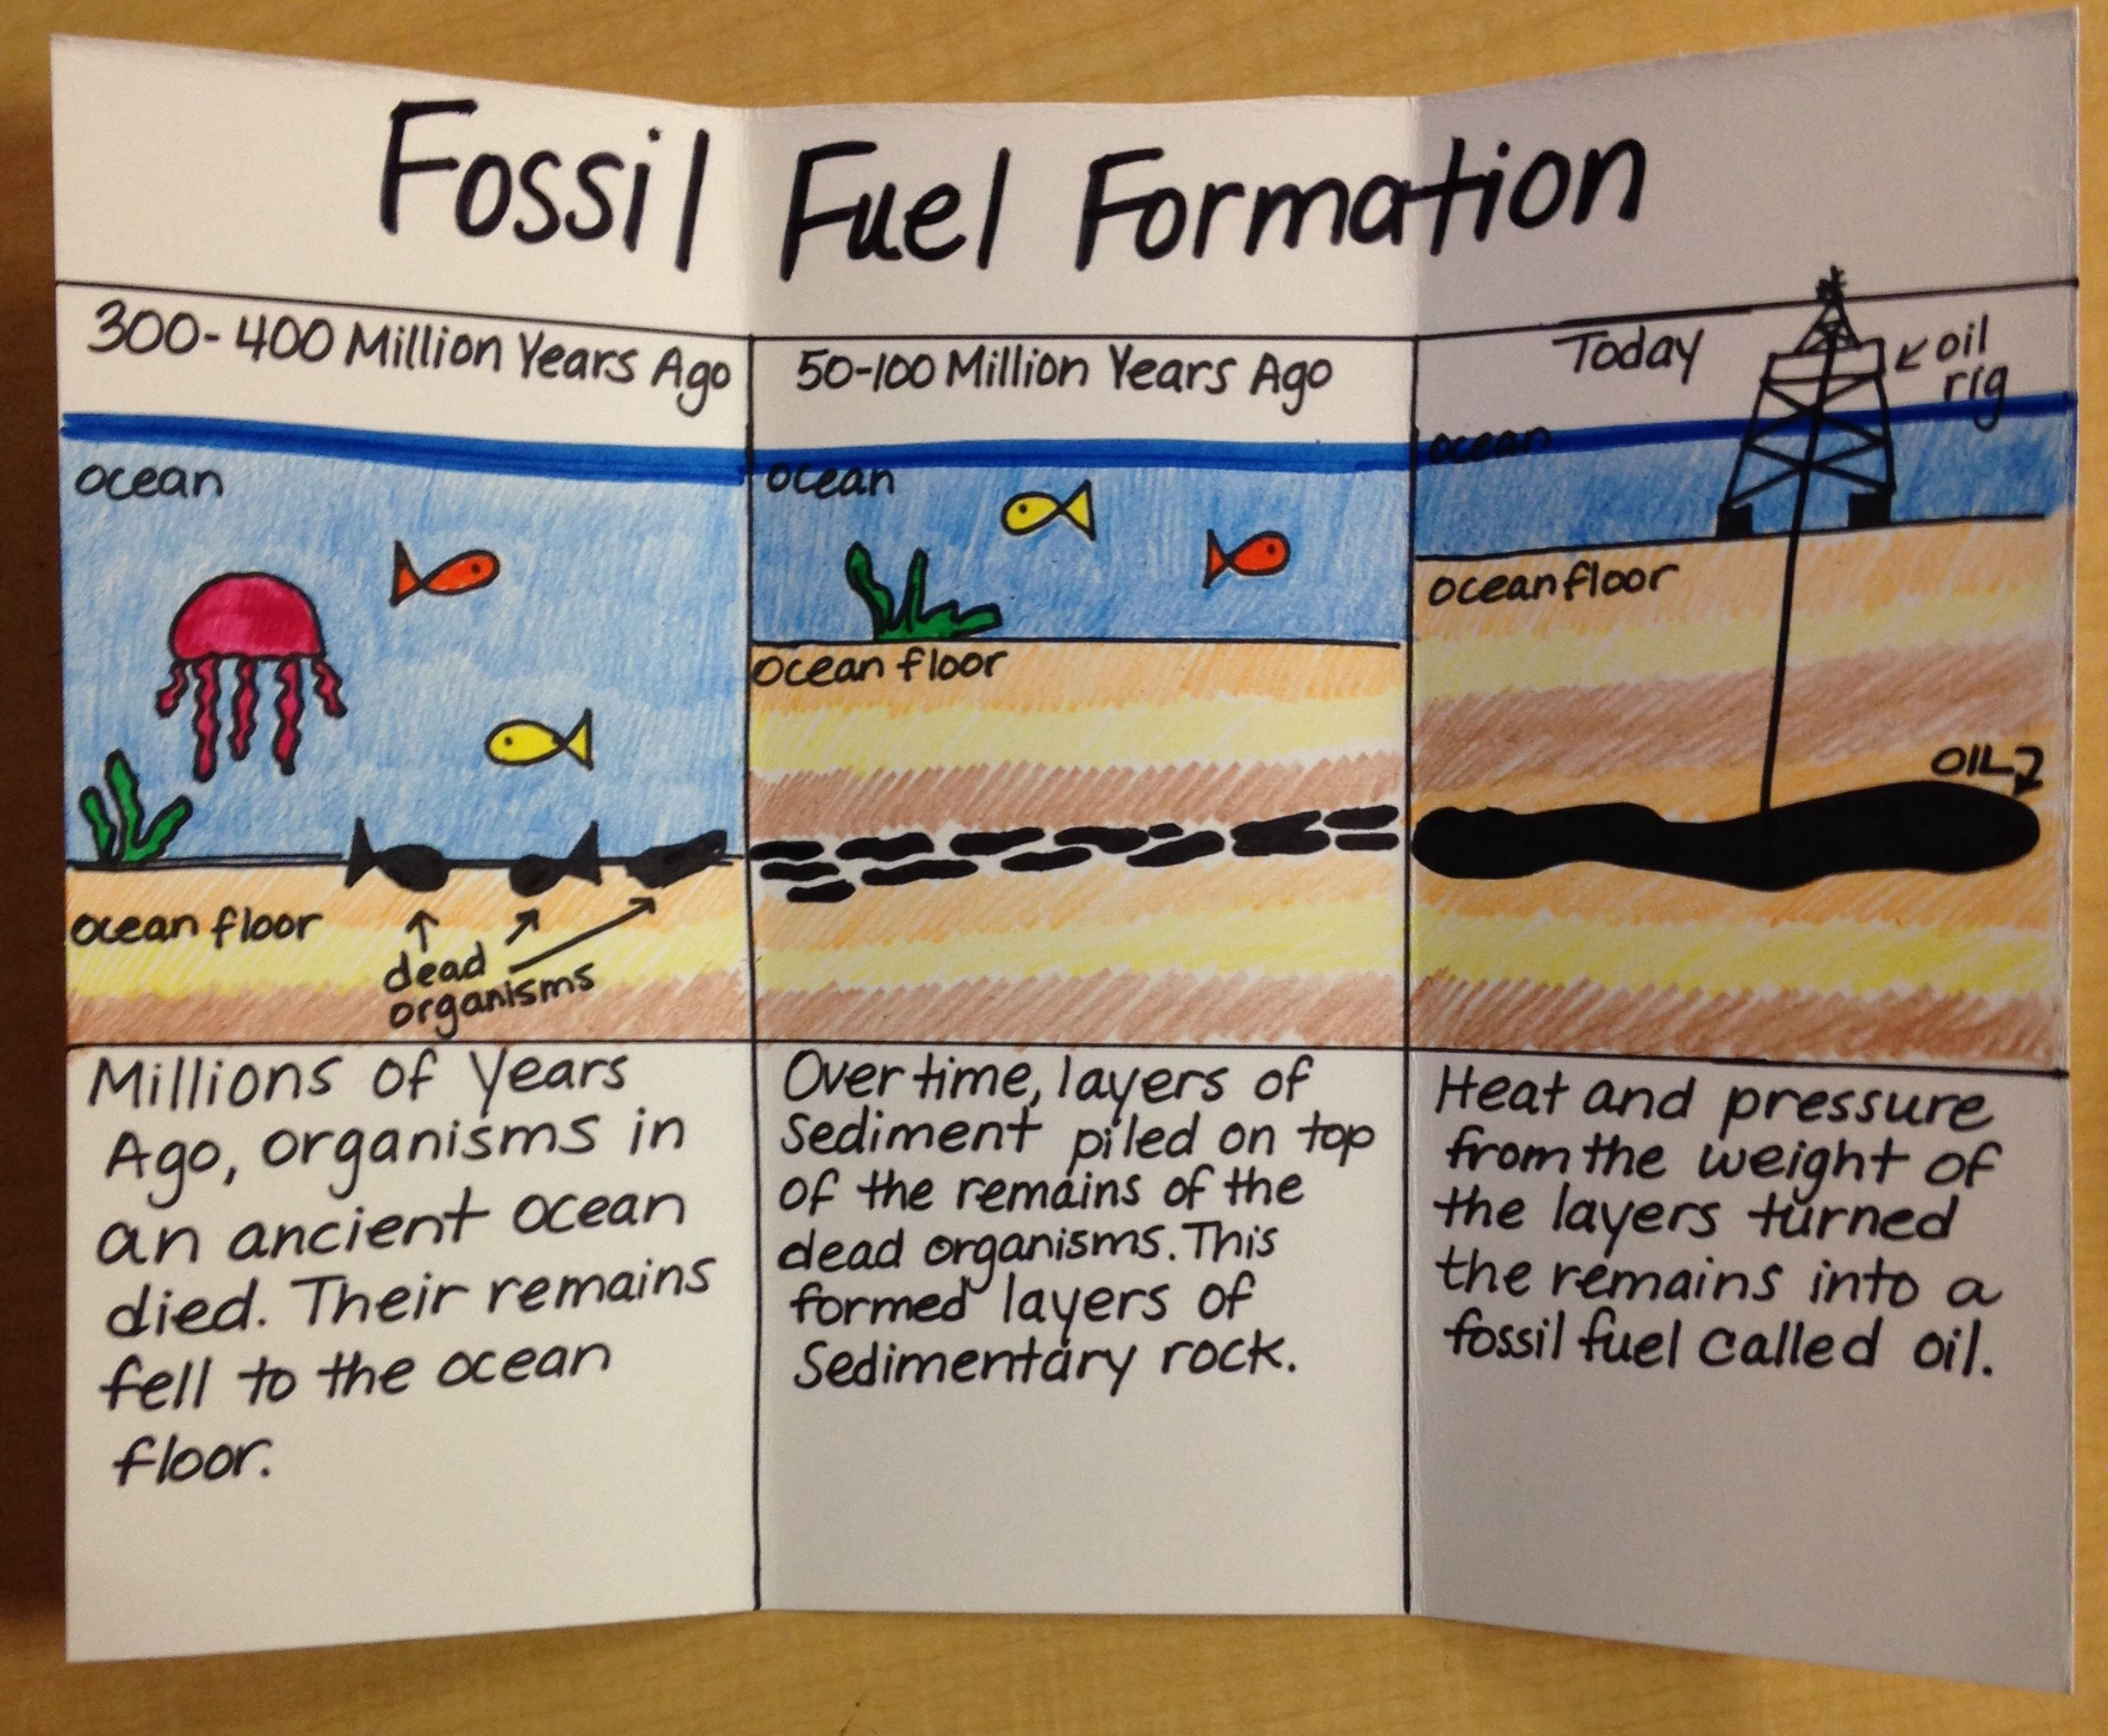 Fossil Fuel Formation With Images